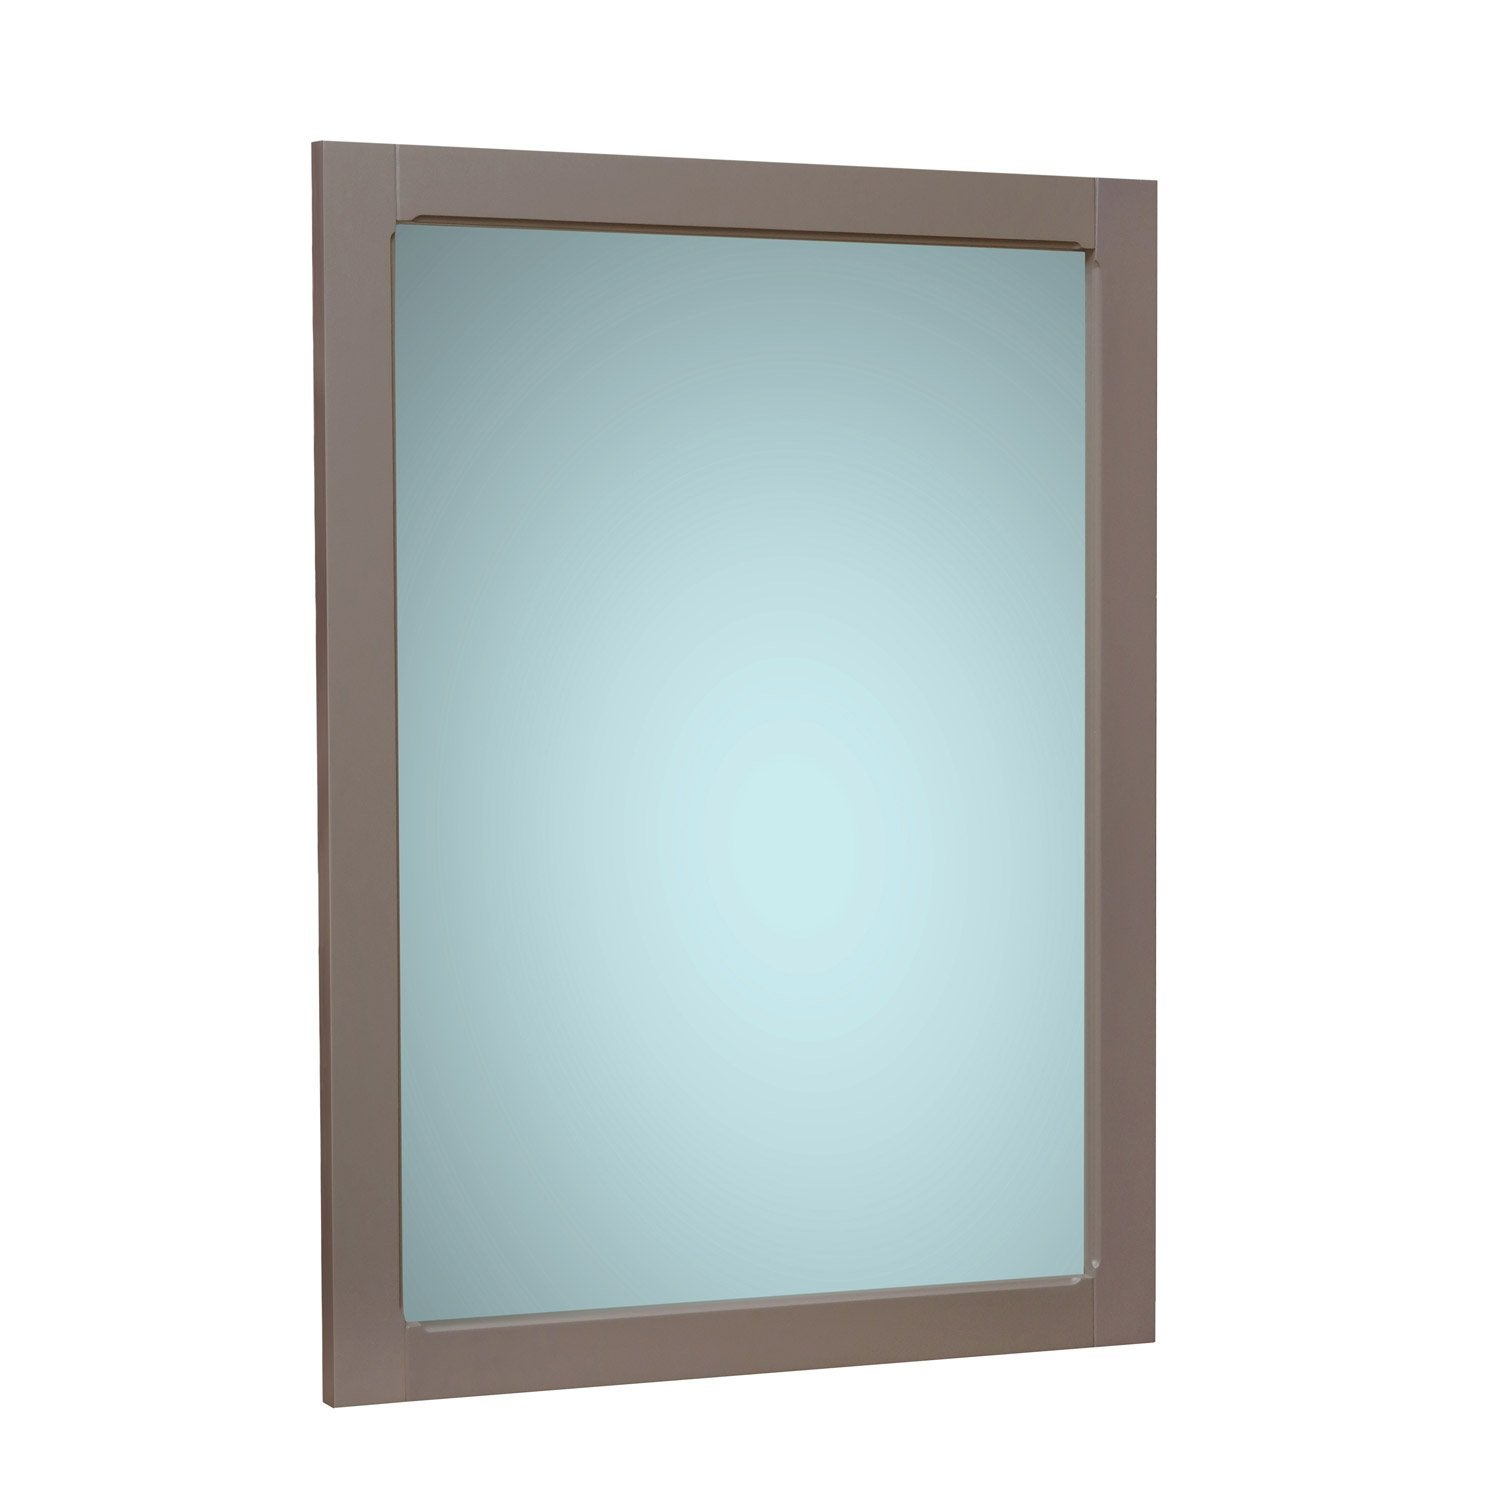 Miroir l 81 cm sensea ashley leroy merlin for Pose miroir salle de bain